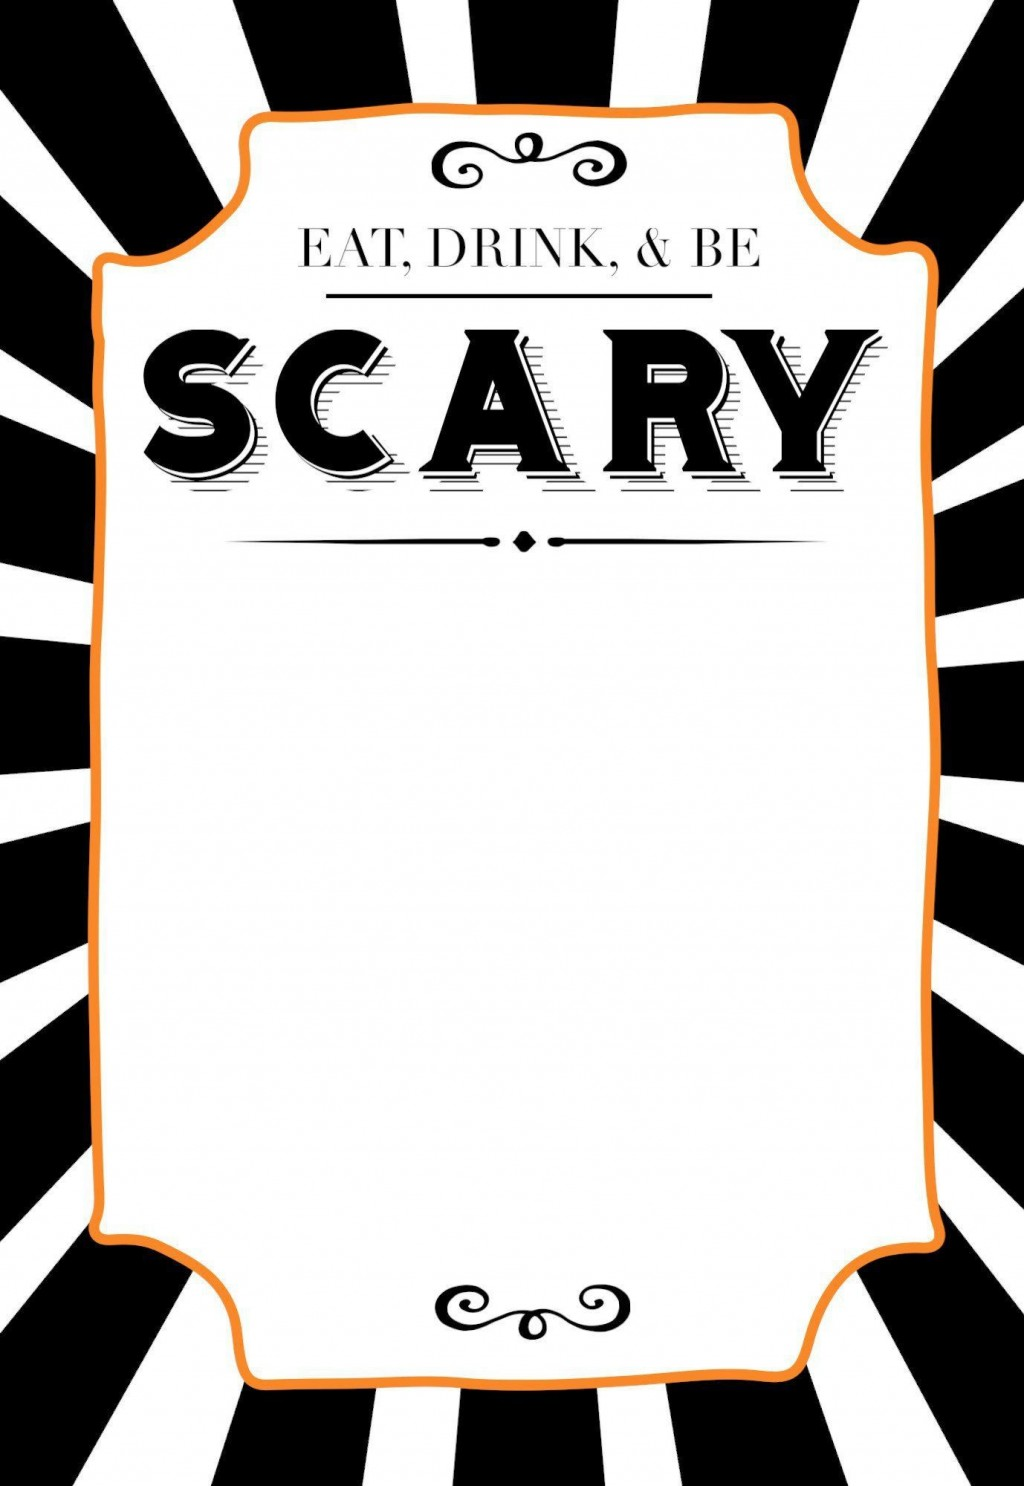 002 Magnificent Free Halloween Invitation Template High Definition  Templates Online Printable Birthday Party WeddingLarge